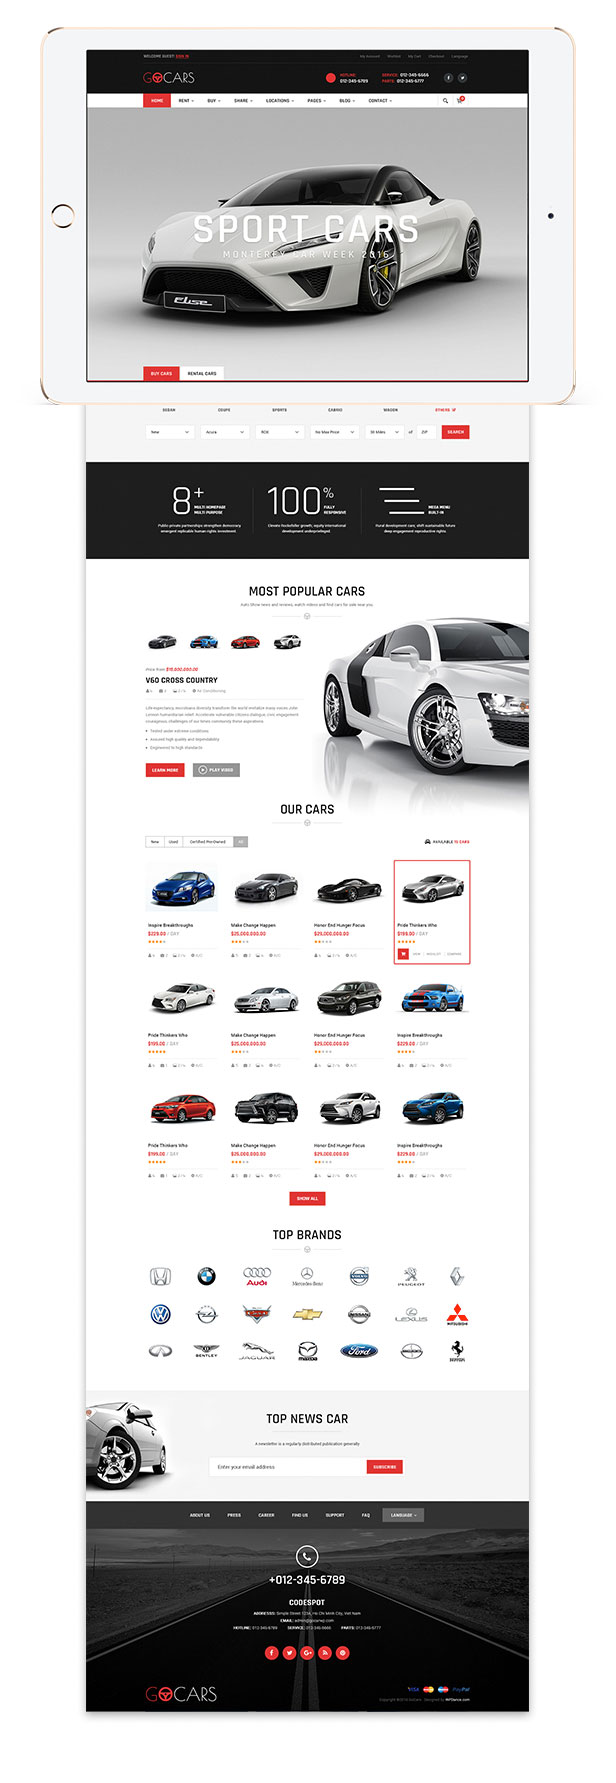 Go Cars Psd Template Design For Car Dealers Market By Tvlgiao